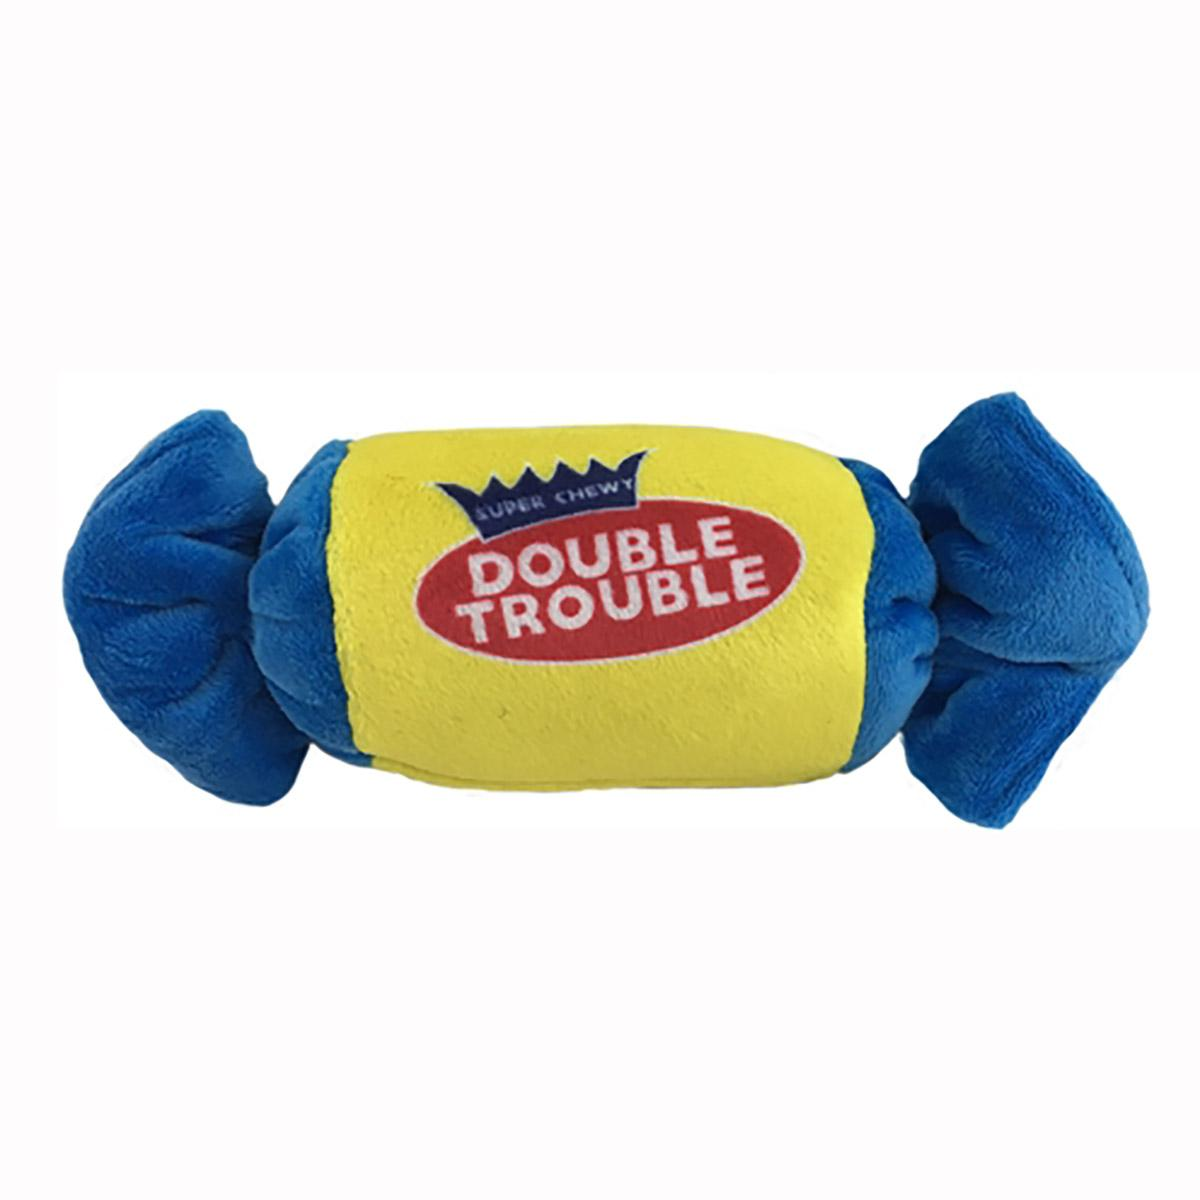 Lulubelles Power Plush Dog Toy - Double Trouble